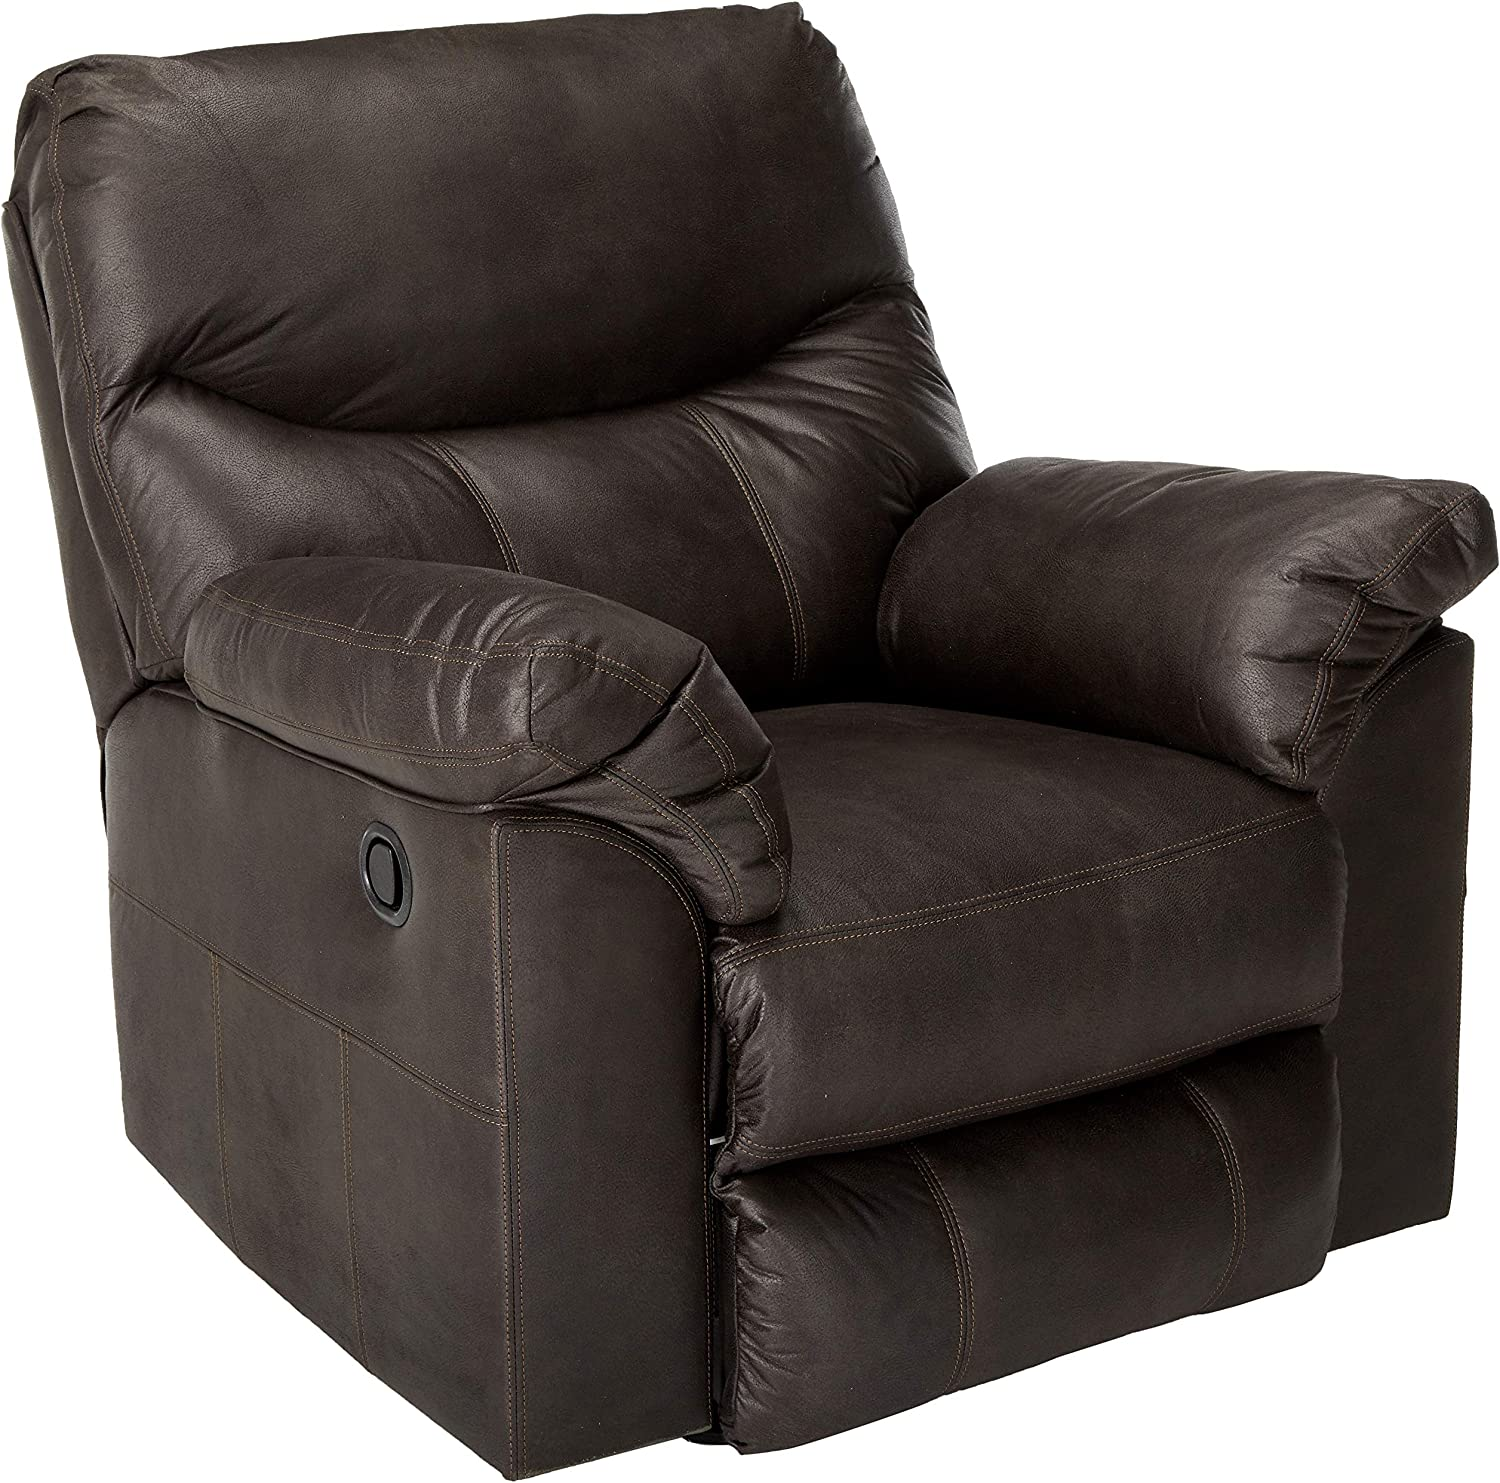 Signature Design by Ashley - Boxberg Contemporary Faux Leather Rocker Recliner, Dark Brown